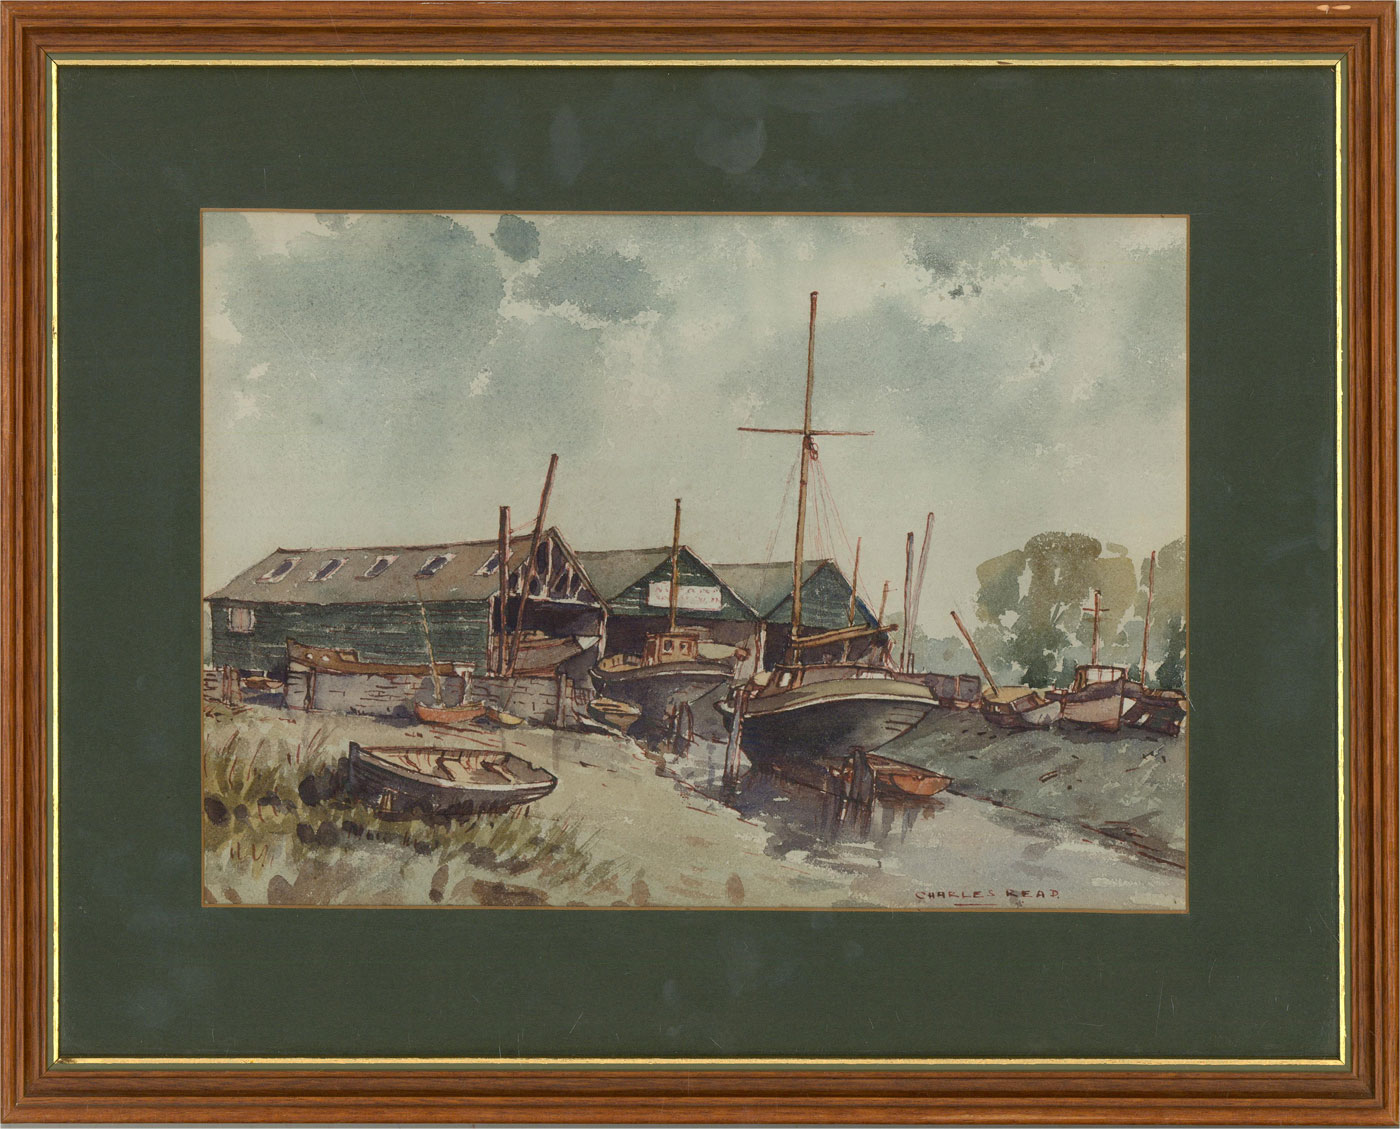 Charles Read - Mid 20th Century Watercolour, Boats On The Slipway